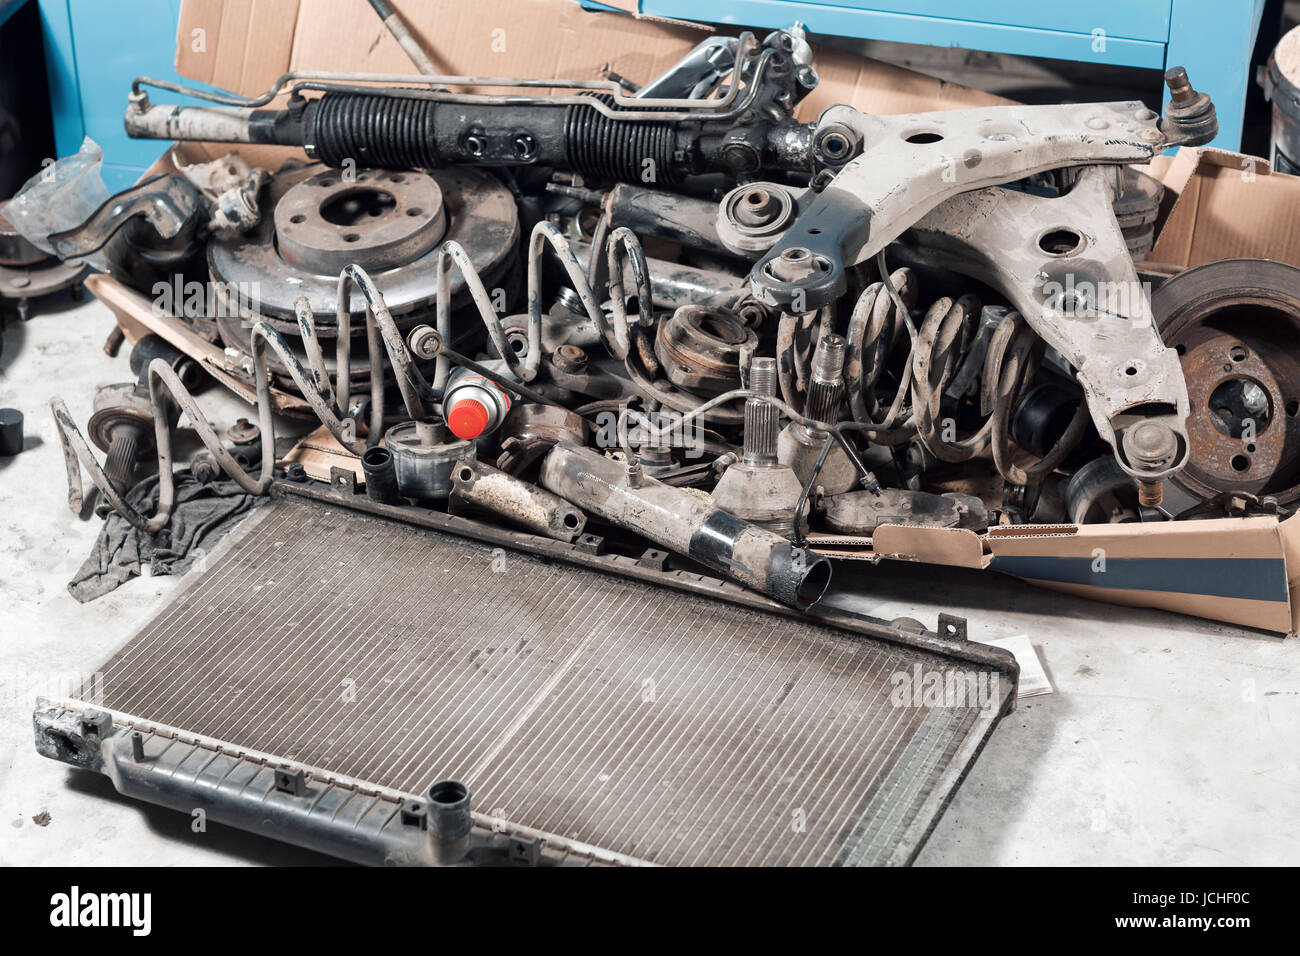 lot old car spare parts in service garage Stock Photo: 145443772 - Alamy